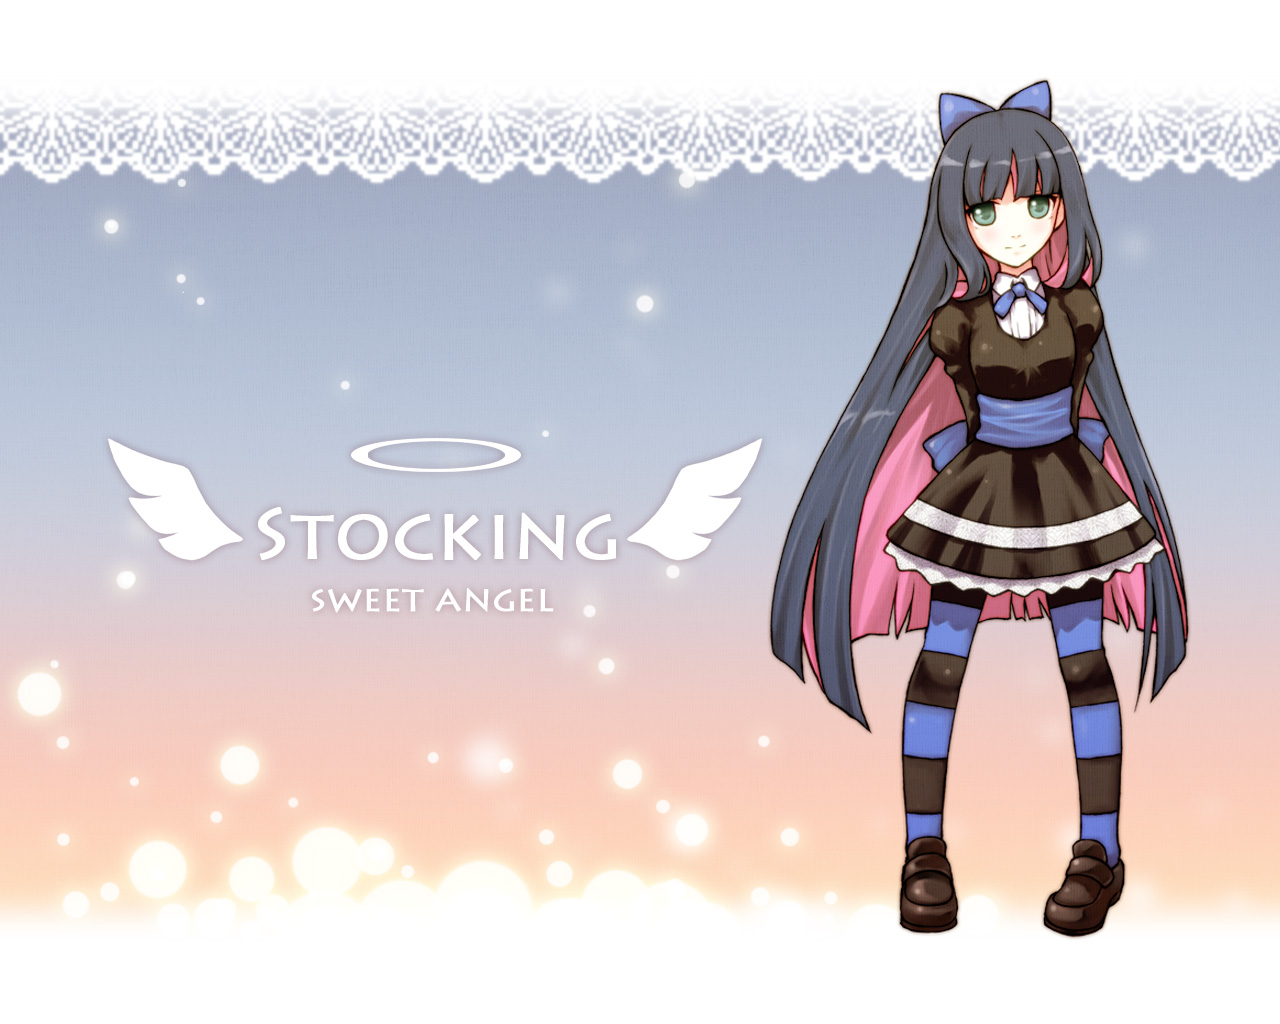 panty_&_stocking_with_garterbelt stocking_(character)